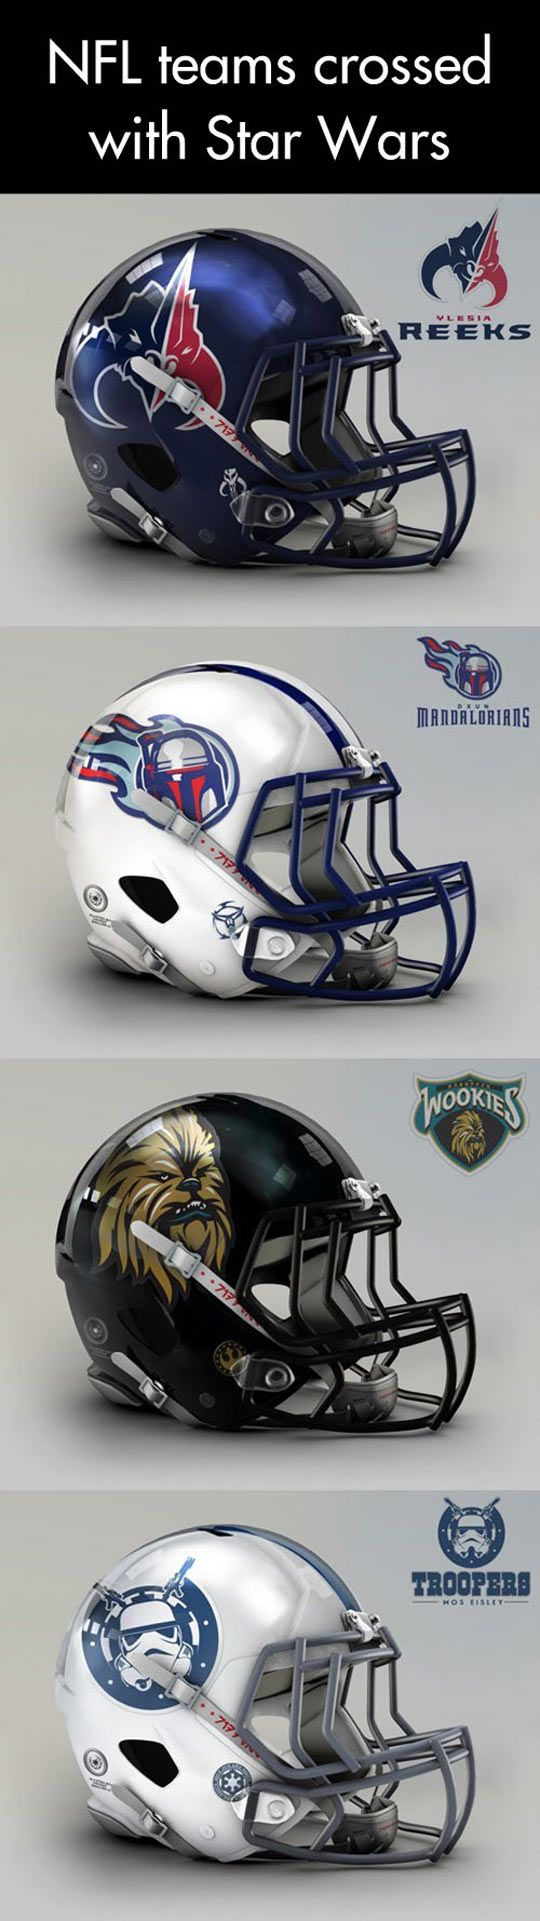 NFL meets Star Wars… but I seriously question the choice of Jedis and Rebels